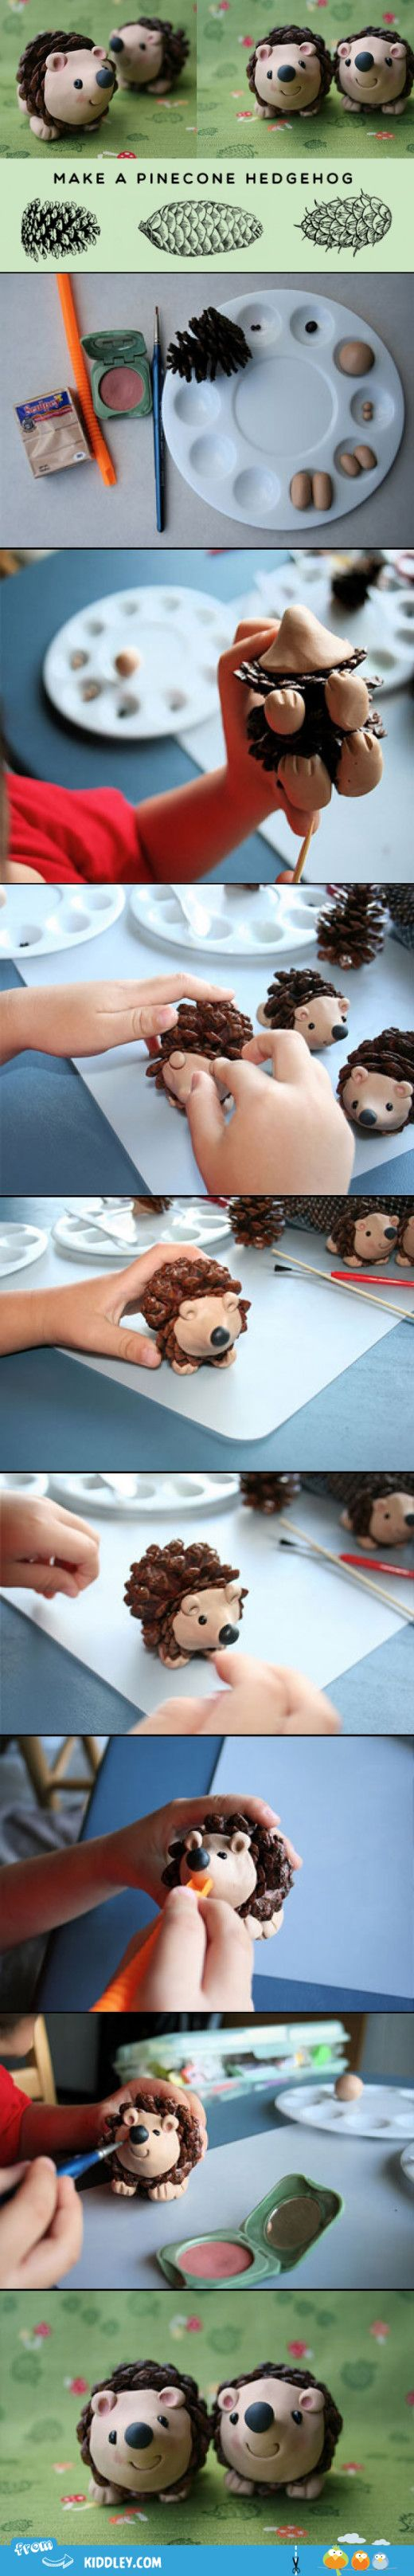 pinecone hedgehog. what a fun idea @Emma Zangs Zangs MacDonald , @catherine gruntman gruntman MacDonald (CE)